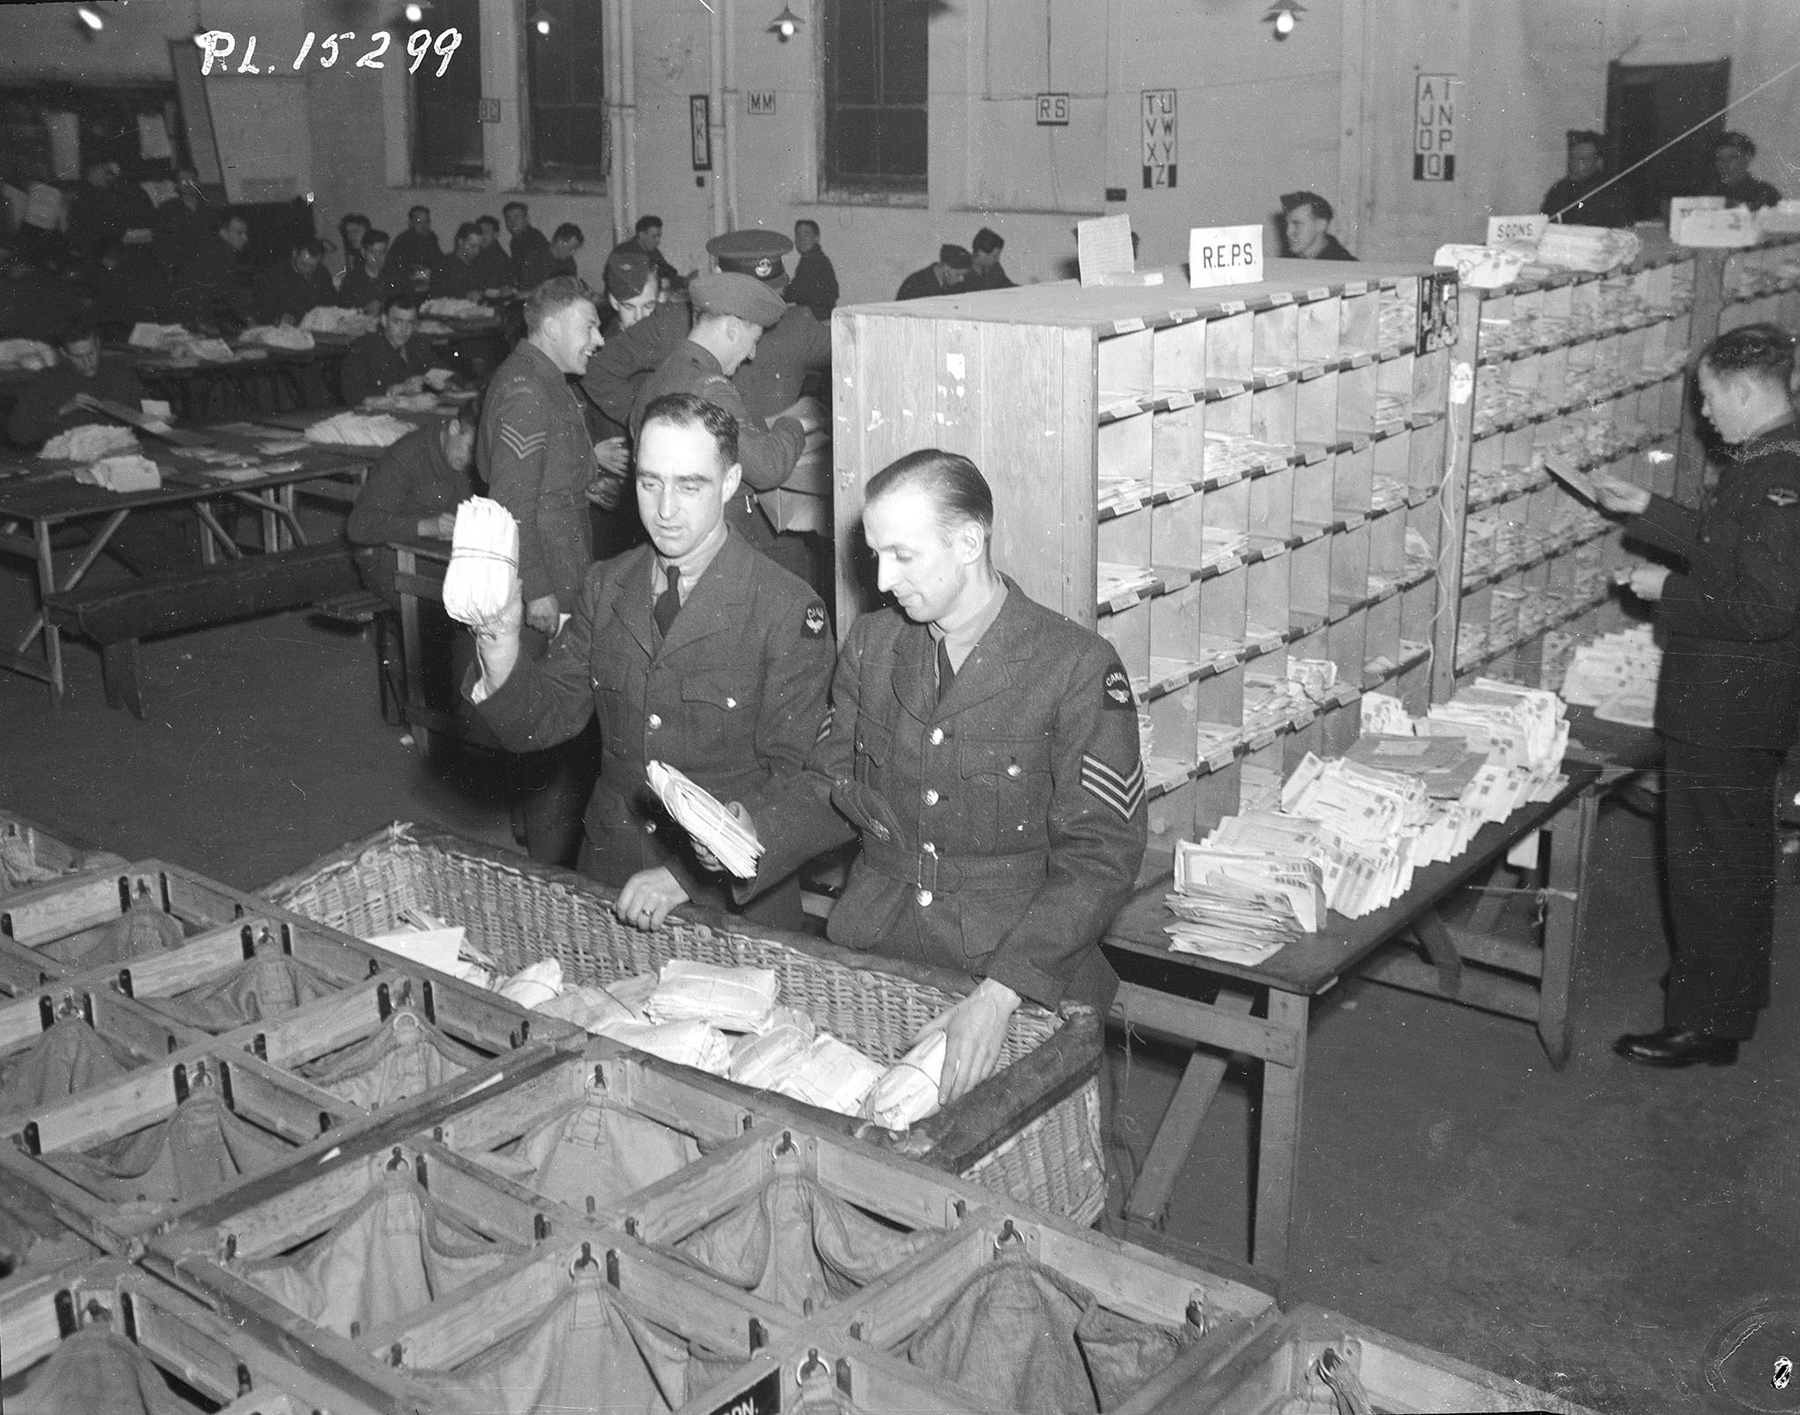 The mail in the foreground has been sorted by RCAF squadron or RAF station at the Base Post Office in the Midlands area of England. Leading Aircraftman A.D. Murray (left foreground) (Carman, Manitoba), and Sergeant W.J. Compton (Toronto Ontario) place bundles of sorted mail into the appropriate basket for transport to a squadron or station. PHOTO: DND Archives